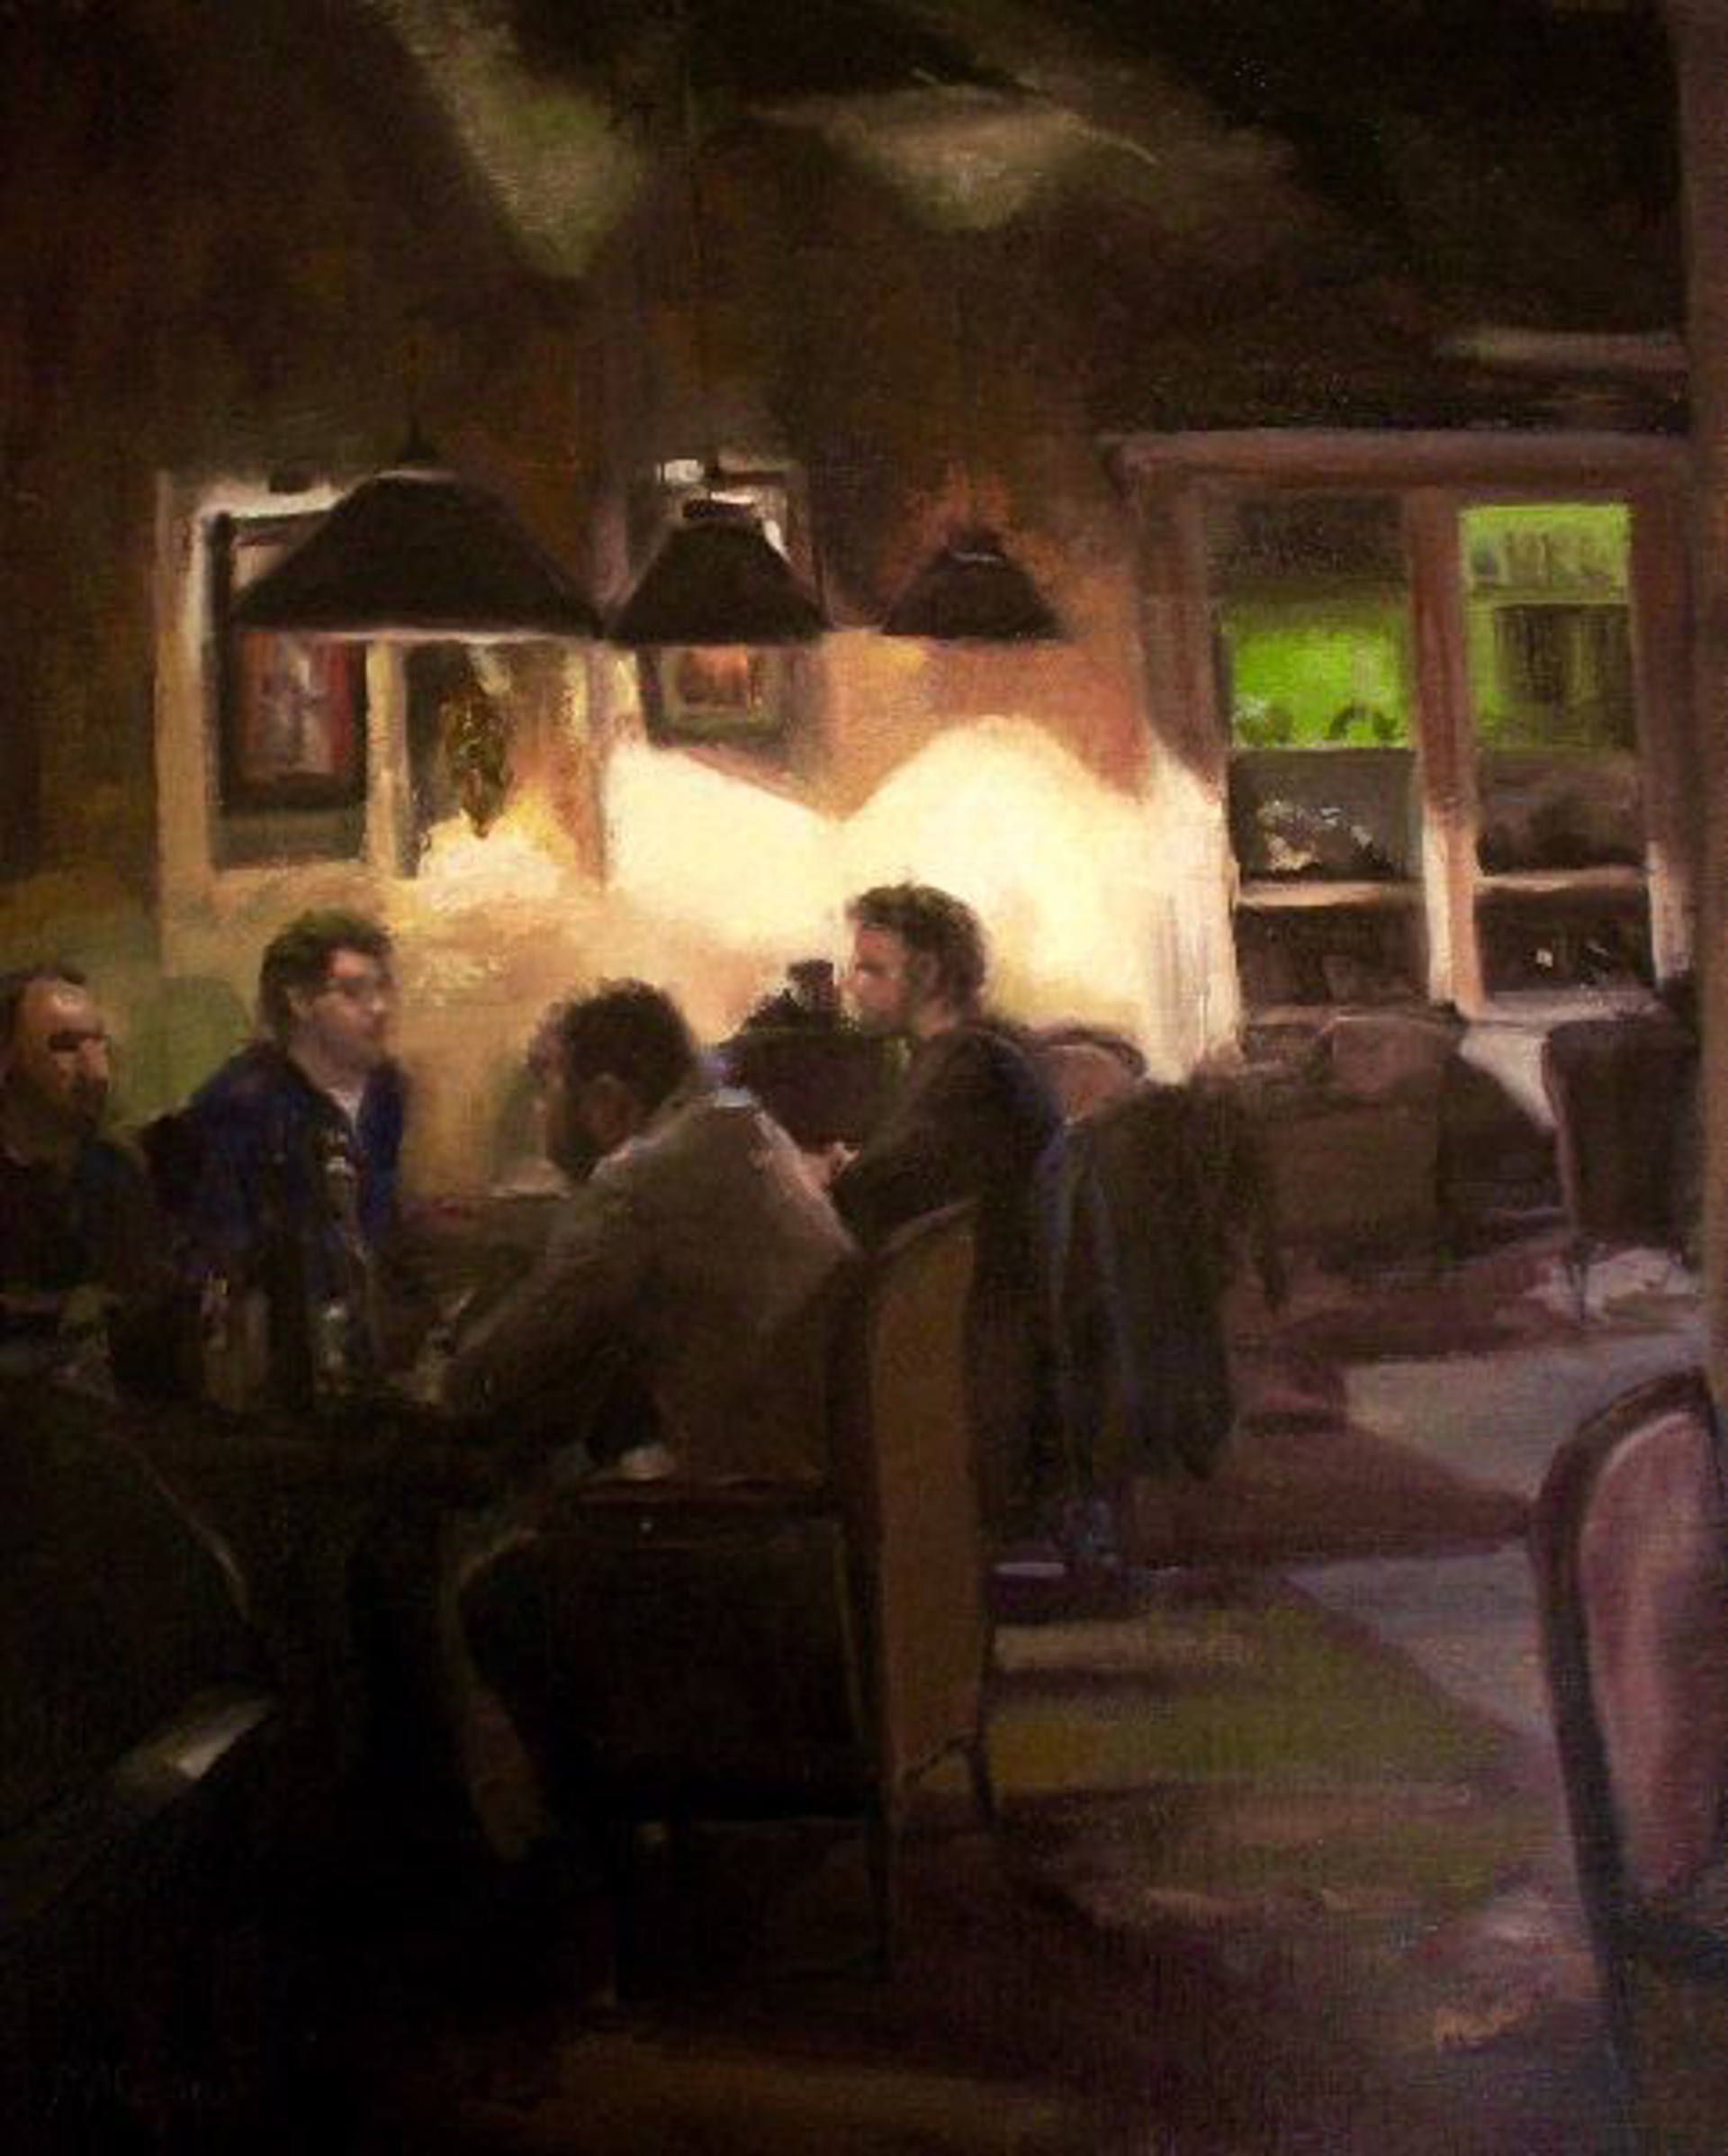 Night Out by Mary Ann Cope